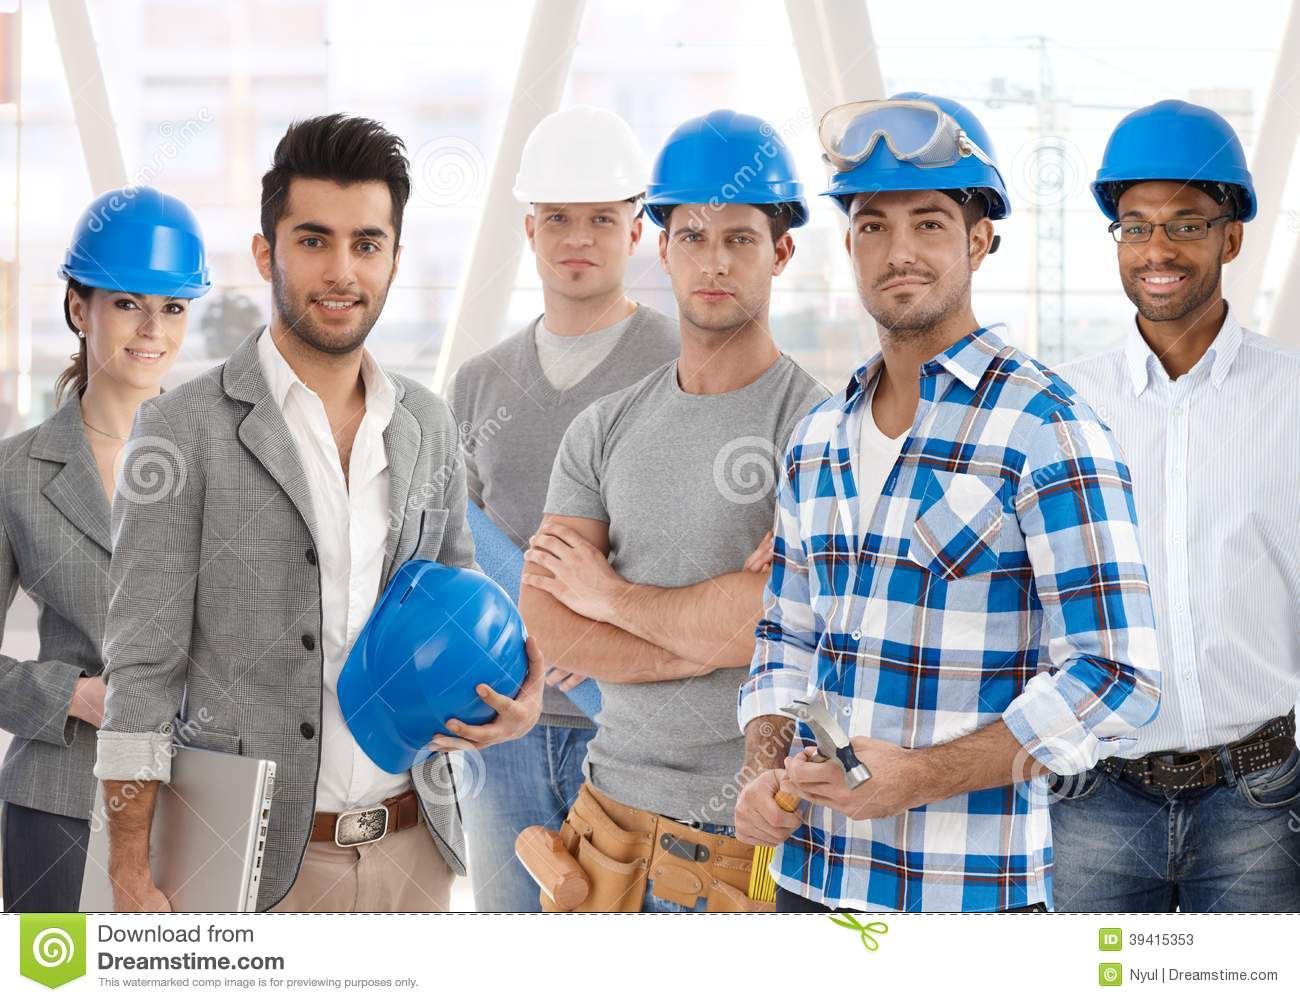 Team of diverse people from building industry